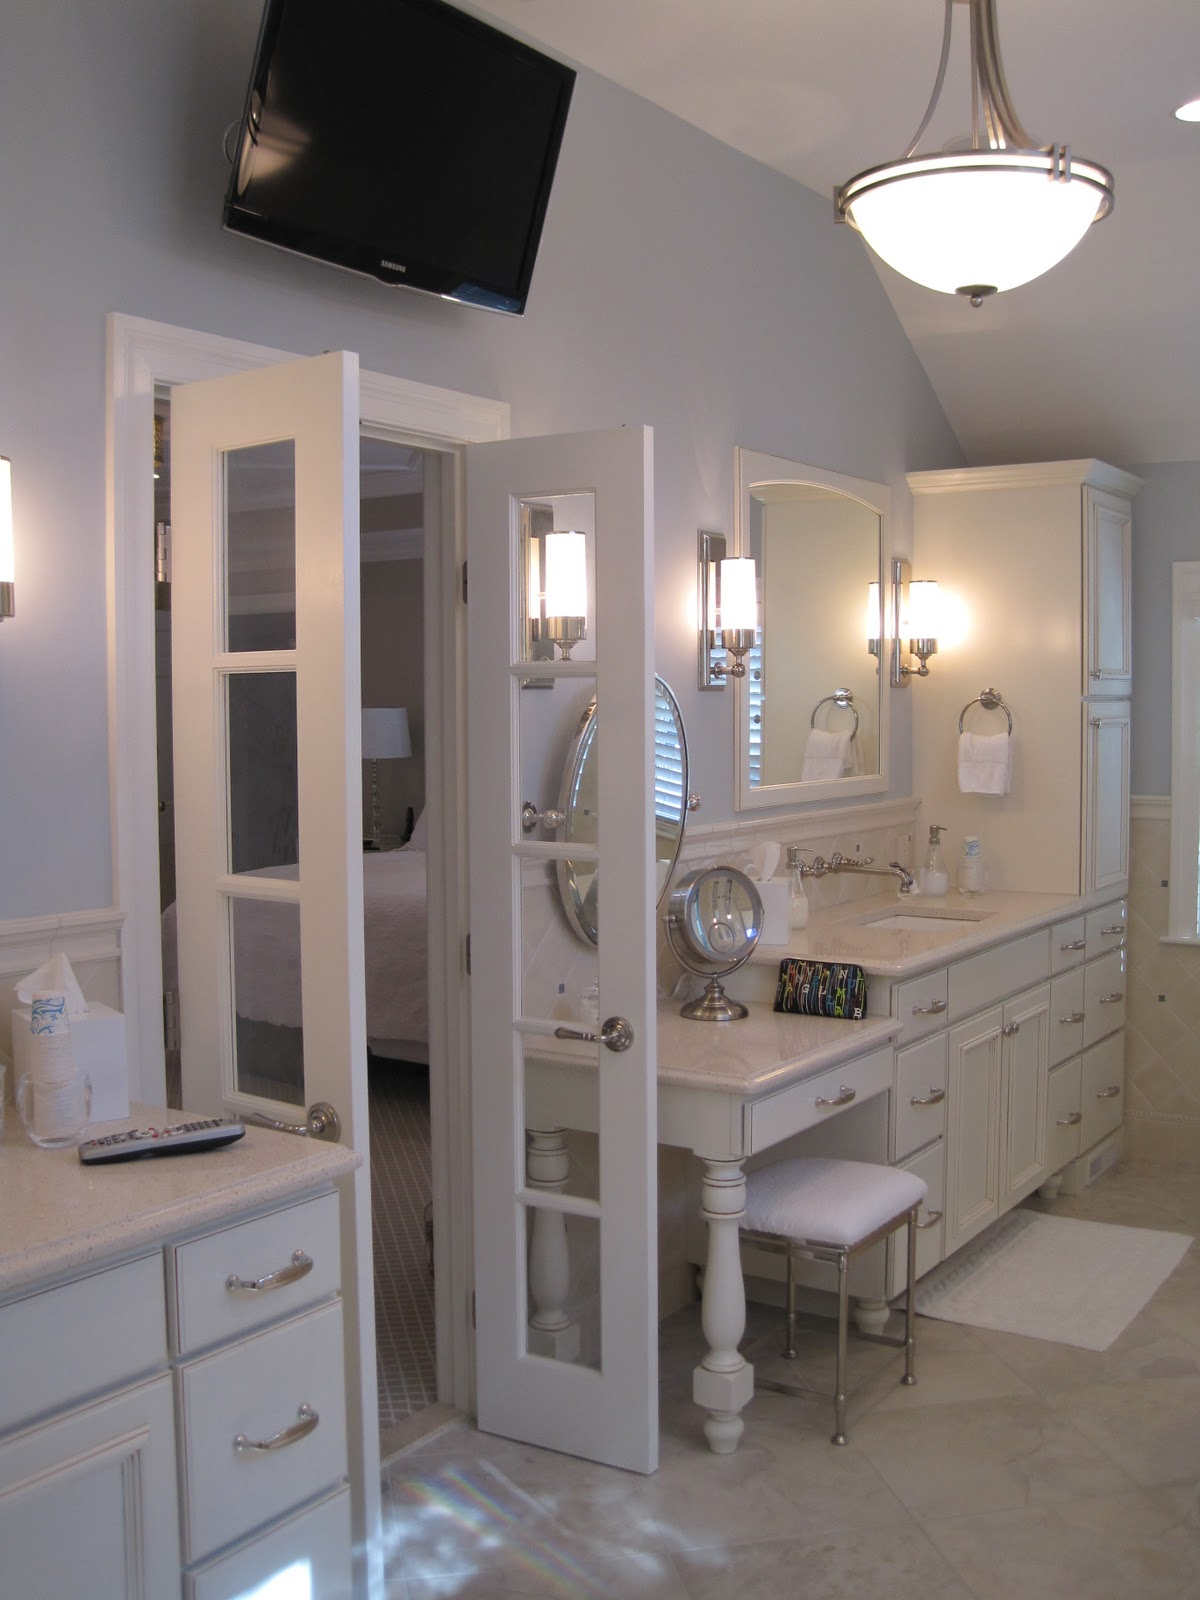 Alexi bebezas master suite bath addition over garage for Master suite bathroom